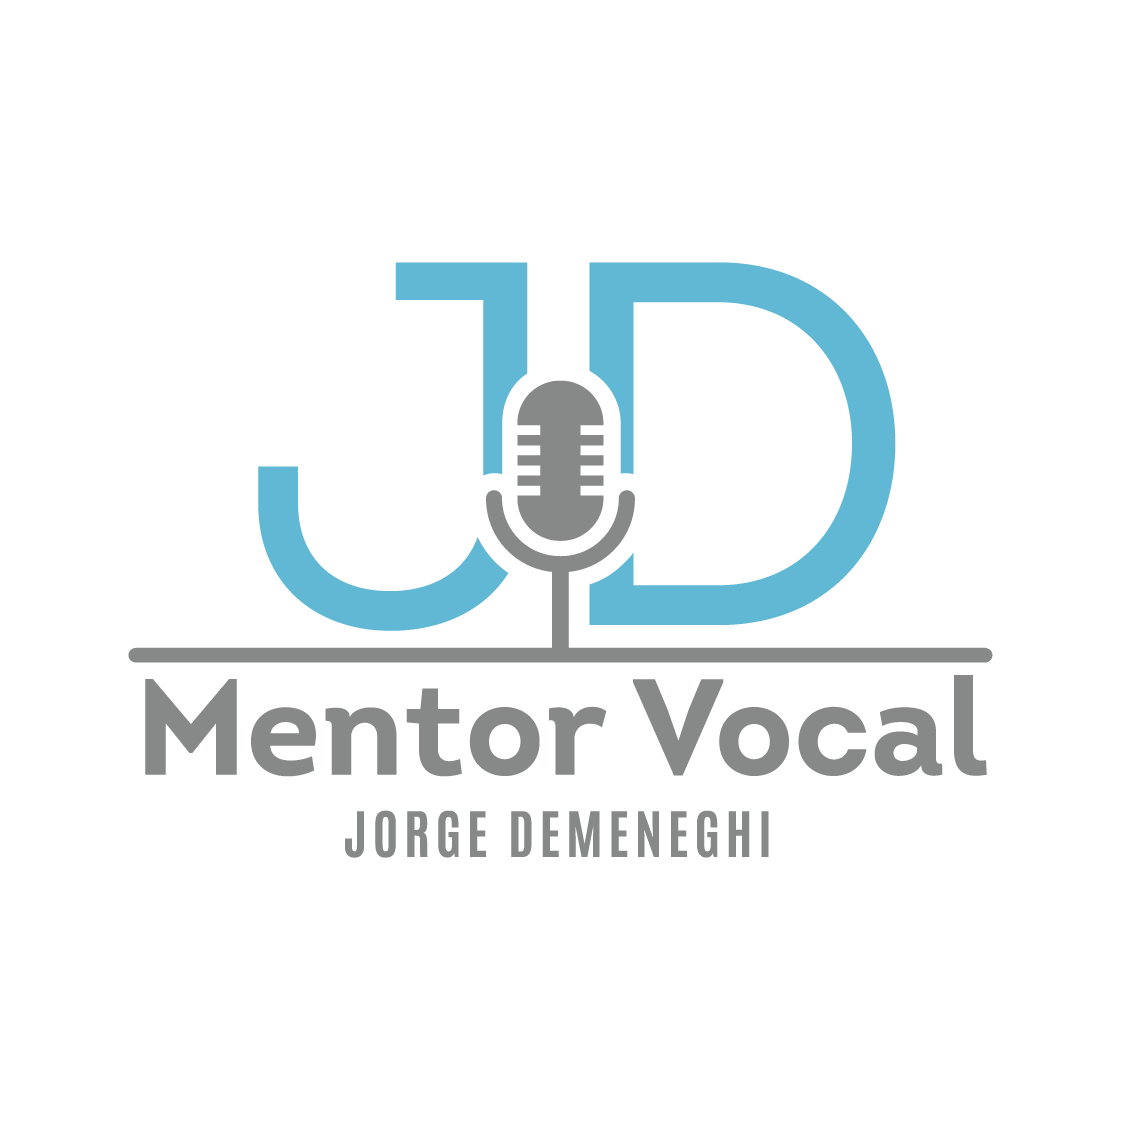 JD mentor vocal transparente